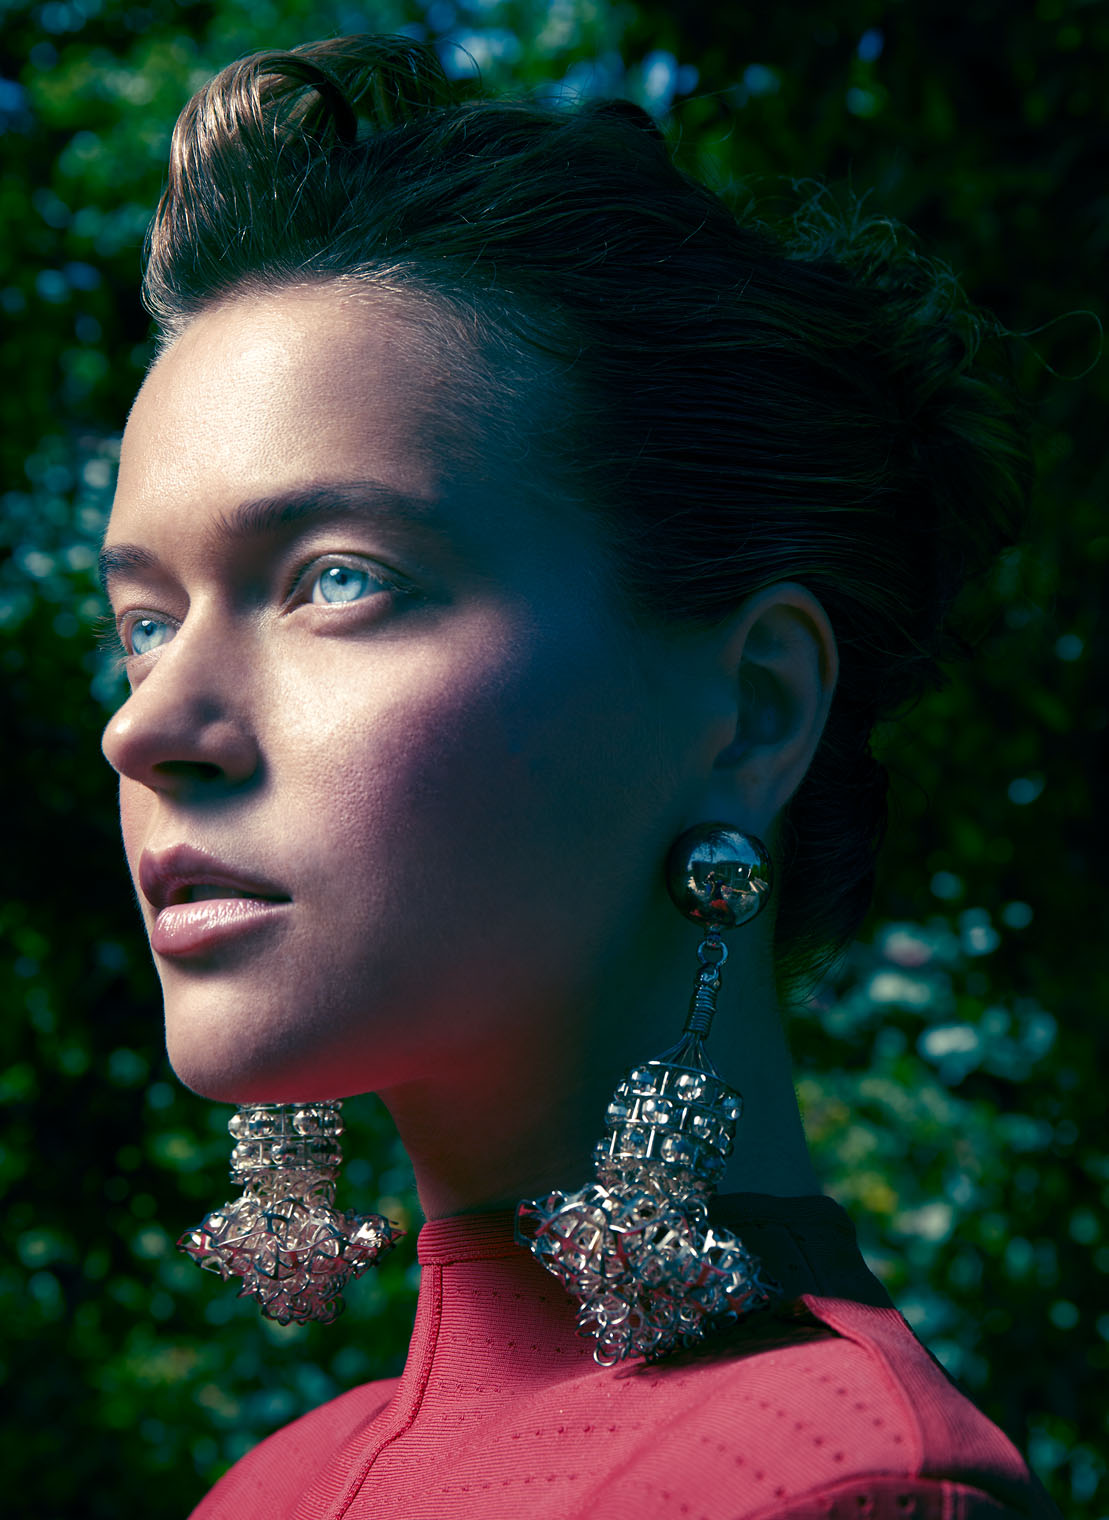 fashion portrait of beautiful woman with robot and cyborg looks in high end lighting style